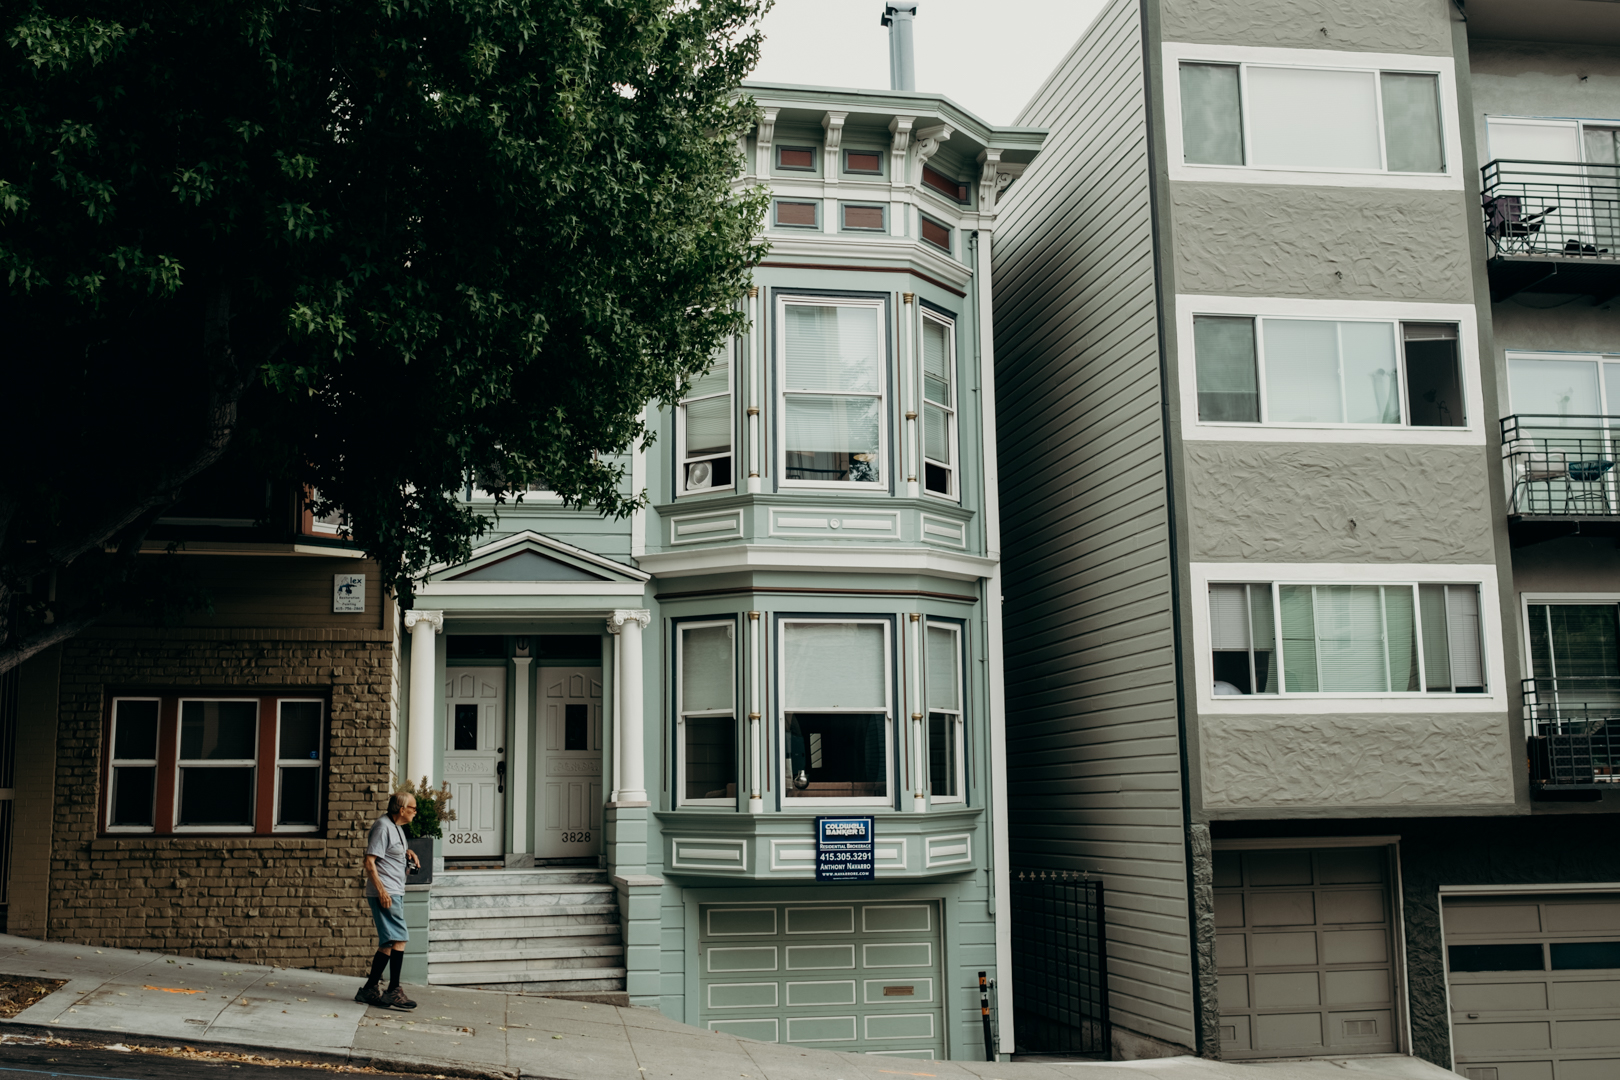 20170904_San Francisco Travel Blog_48.jpg